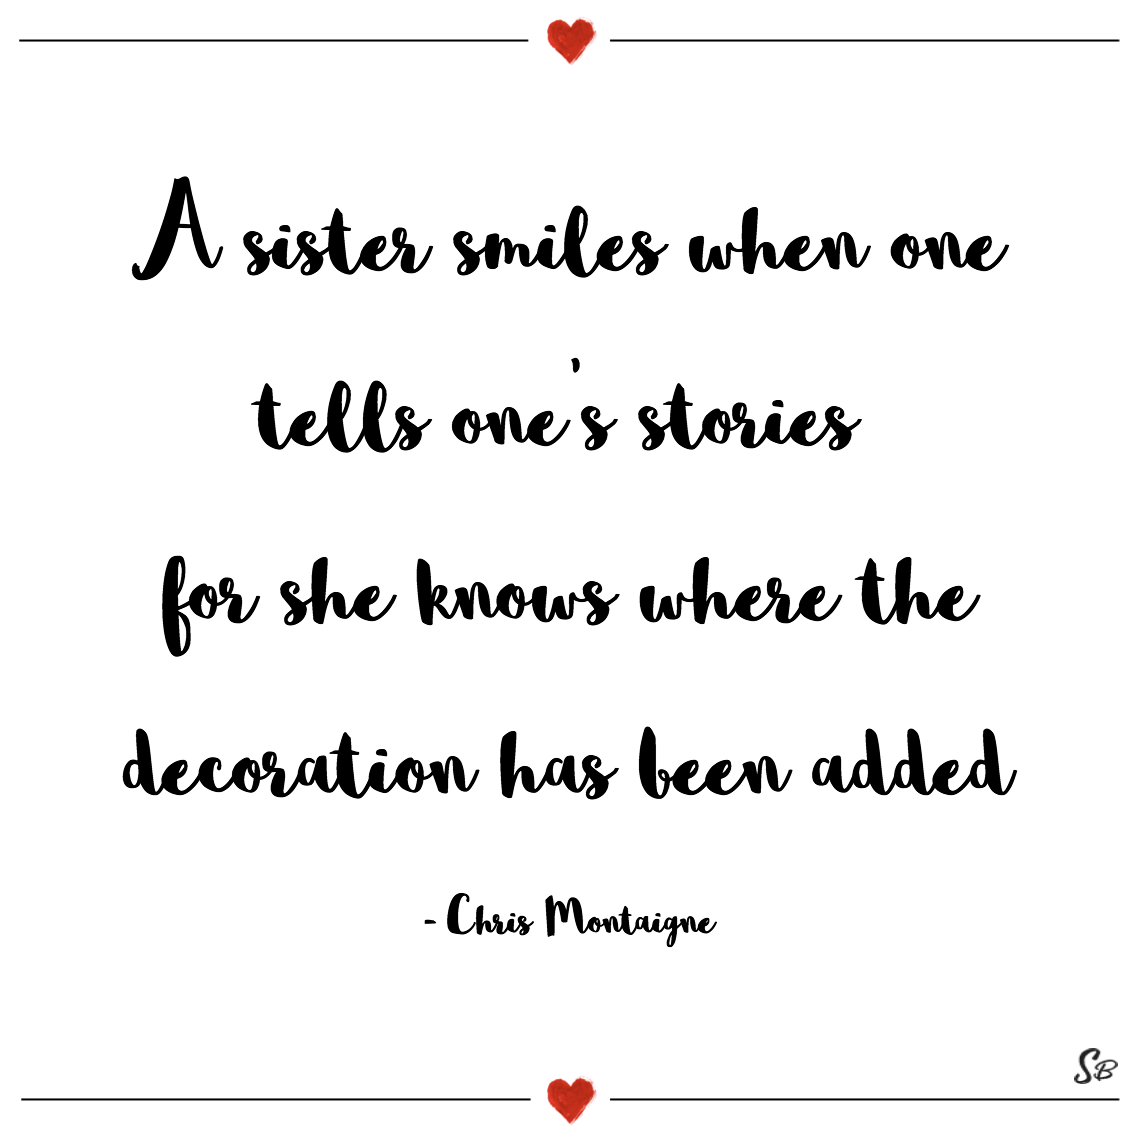 A sister smiles when one tells one's stories for she knows where the decoration has been added chris montaigne